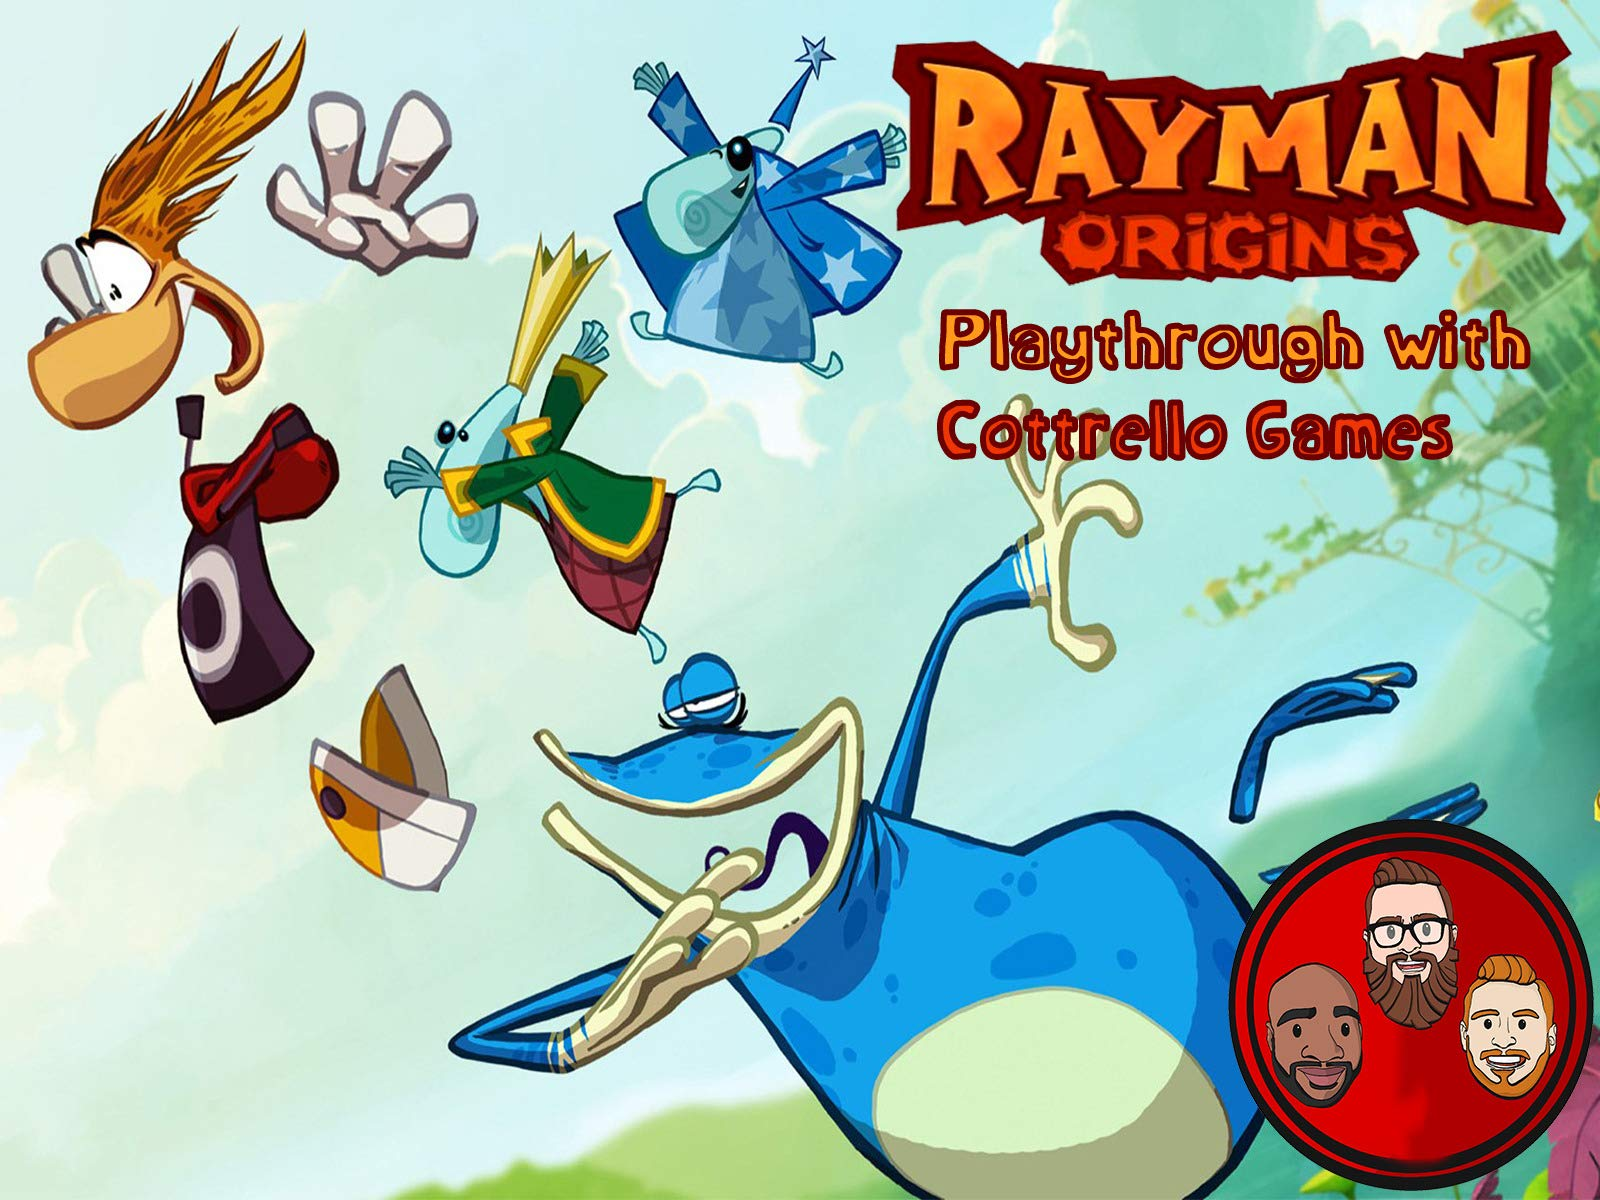 Rayman Origins Playthrough with Cottrello Games